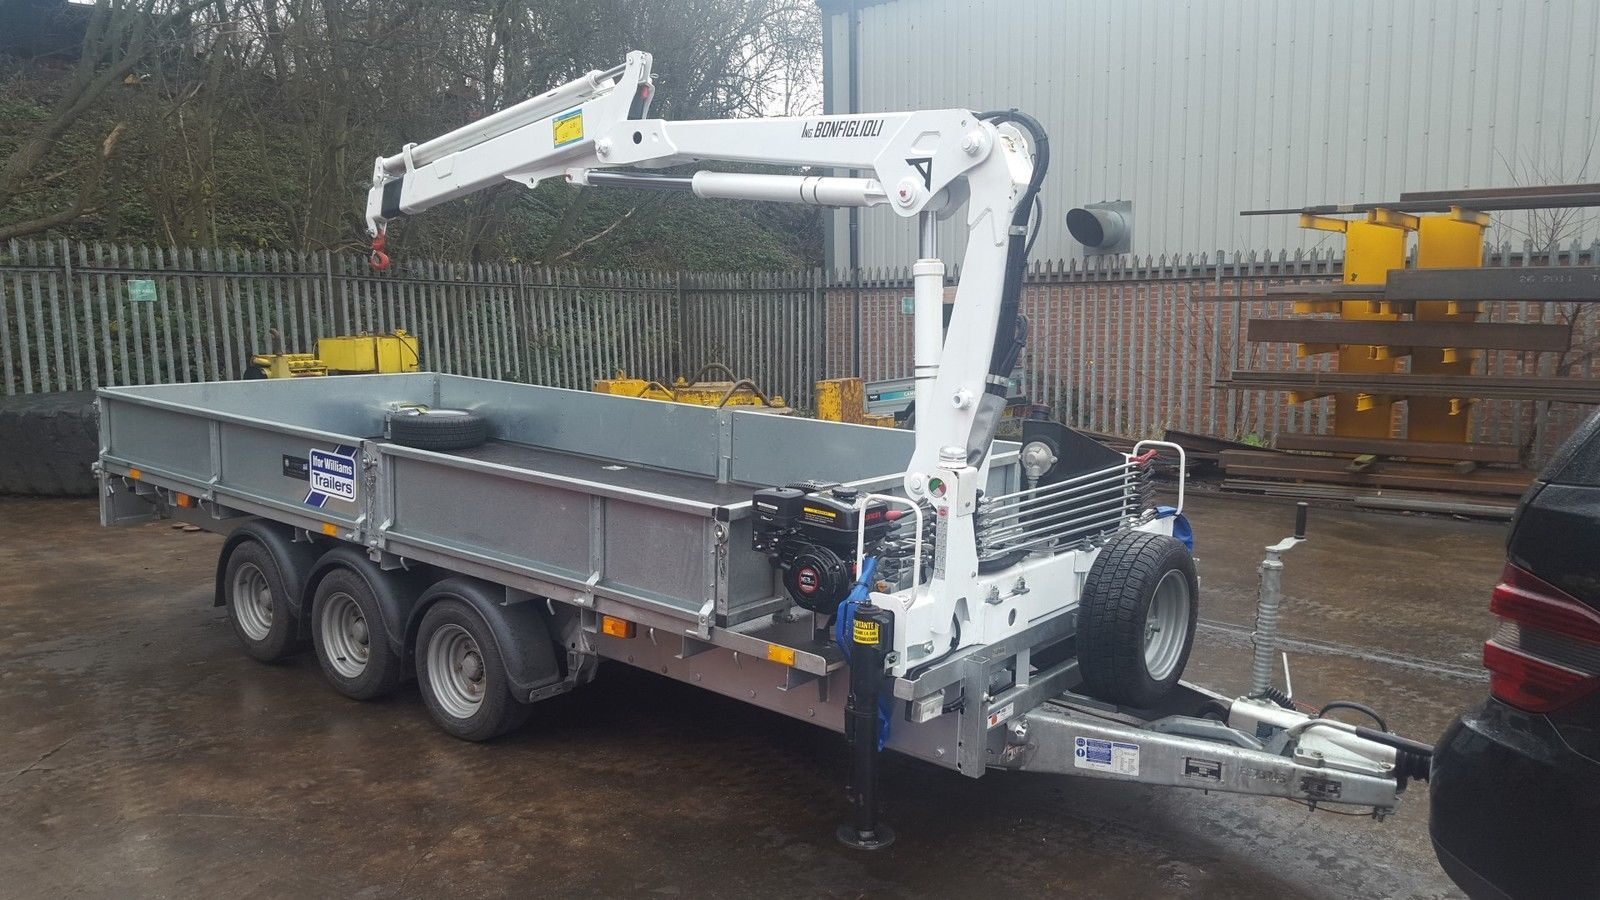 New Ifor Williams Trailer Fitted With 2-3 T/m Crane / Hiab - Ifor Williams Tipping Trailer Wiring Diagram